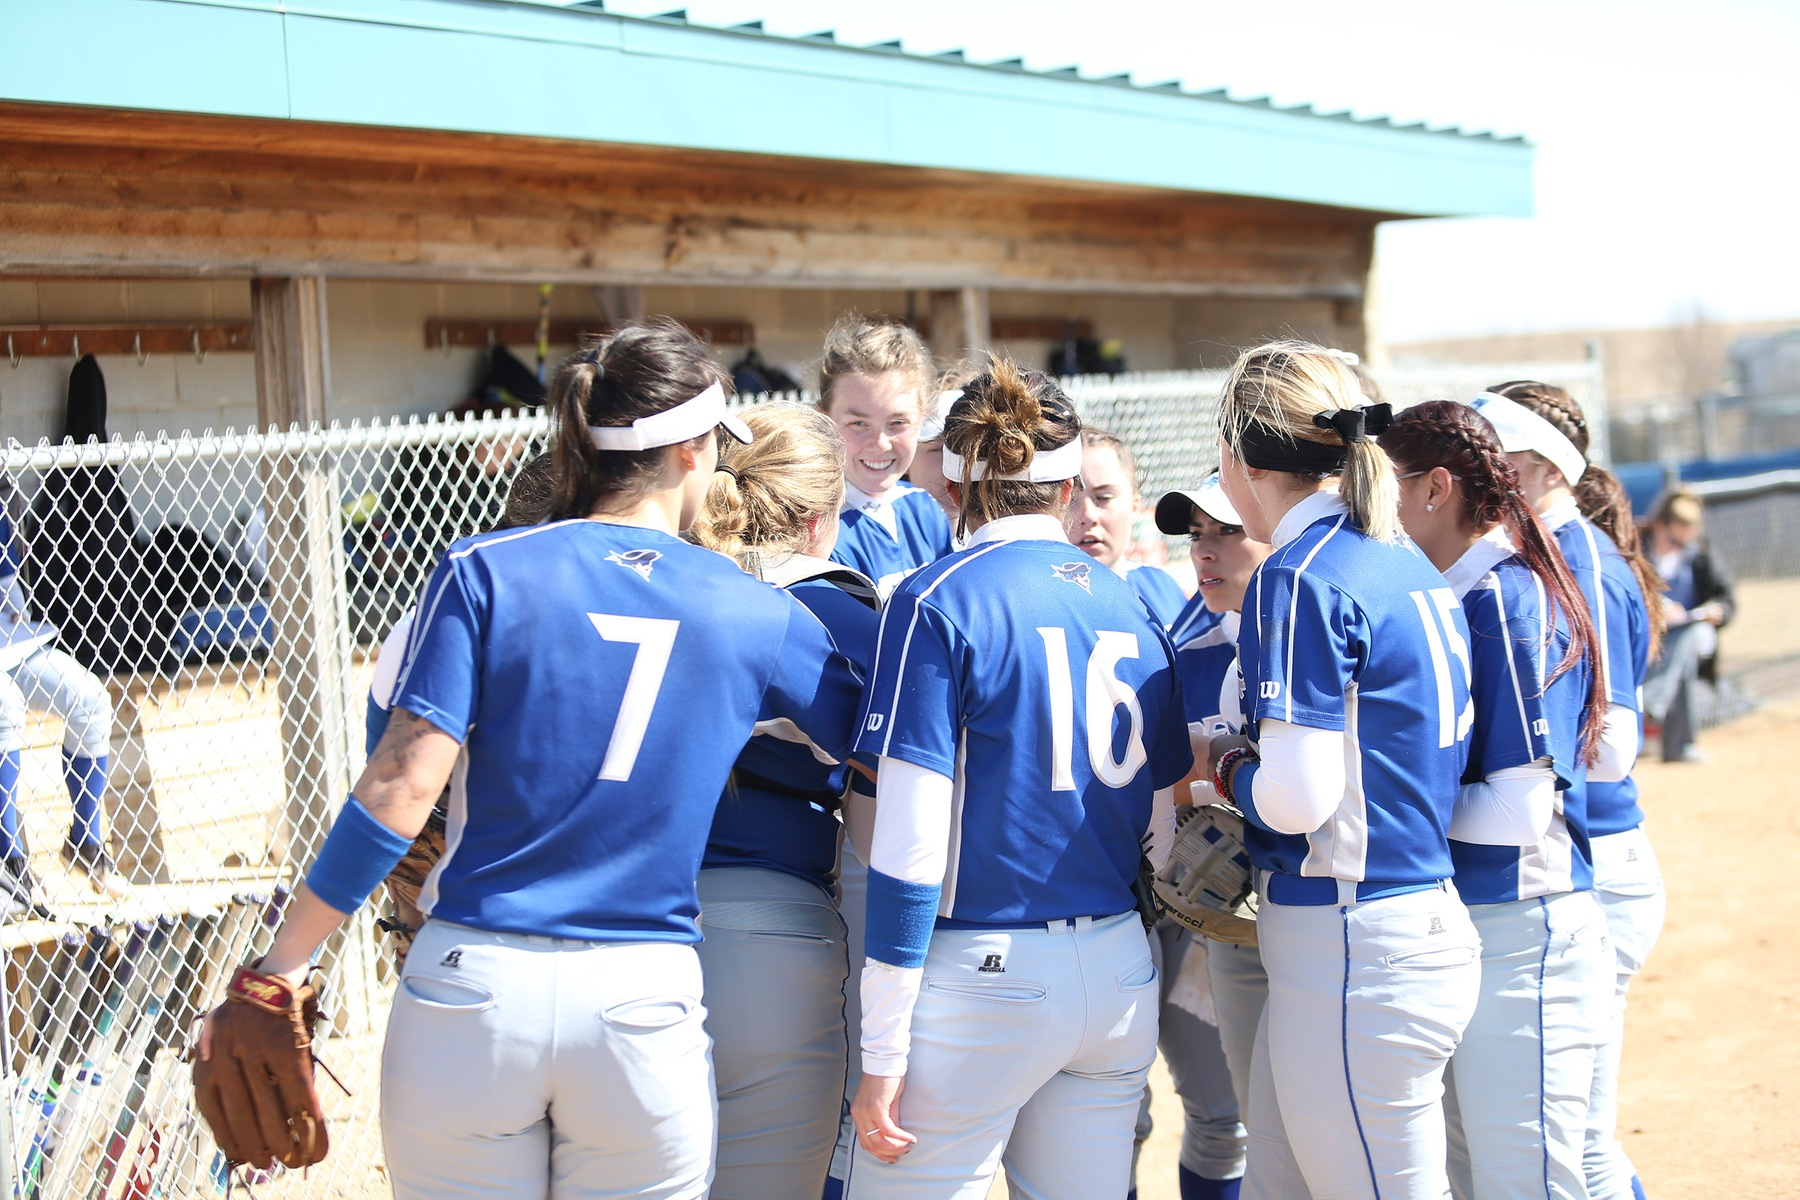 Softball makes schedule changes for the week